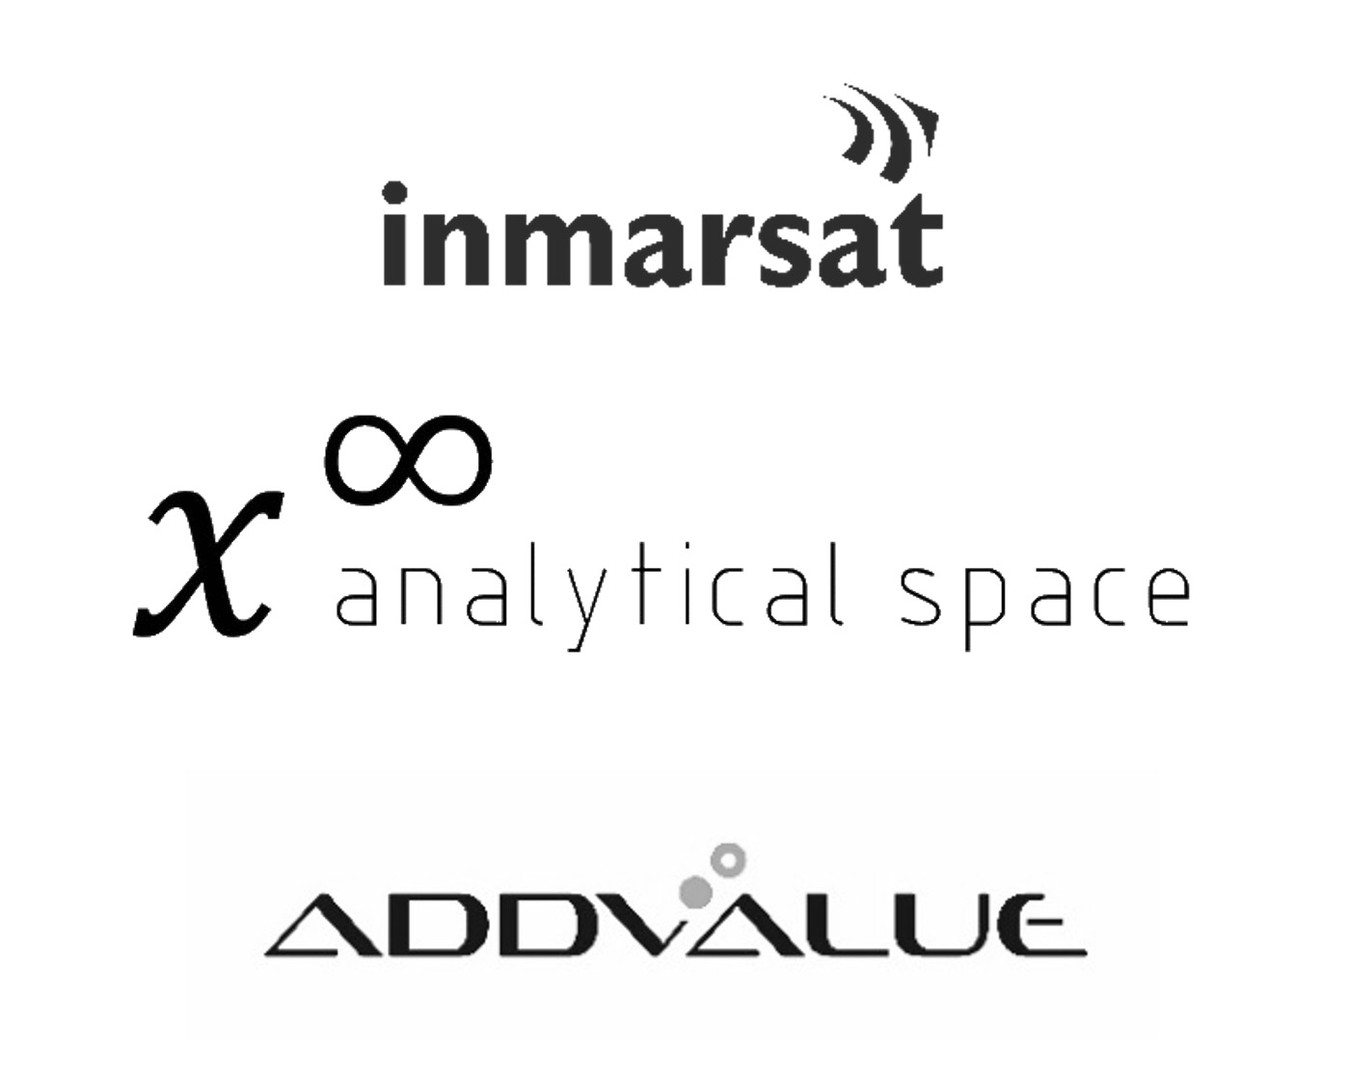 Analytical Space leverages groundbreaking IDRS™ technology from Addvalue and Inmarsat to enable new space data transport architectures